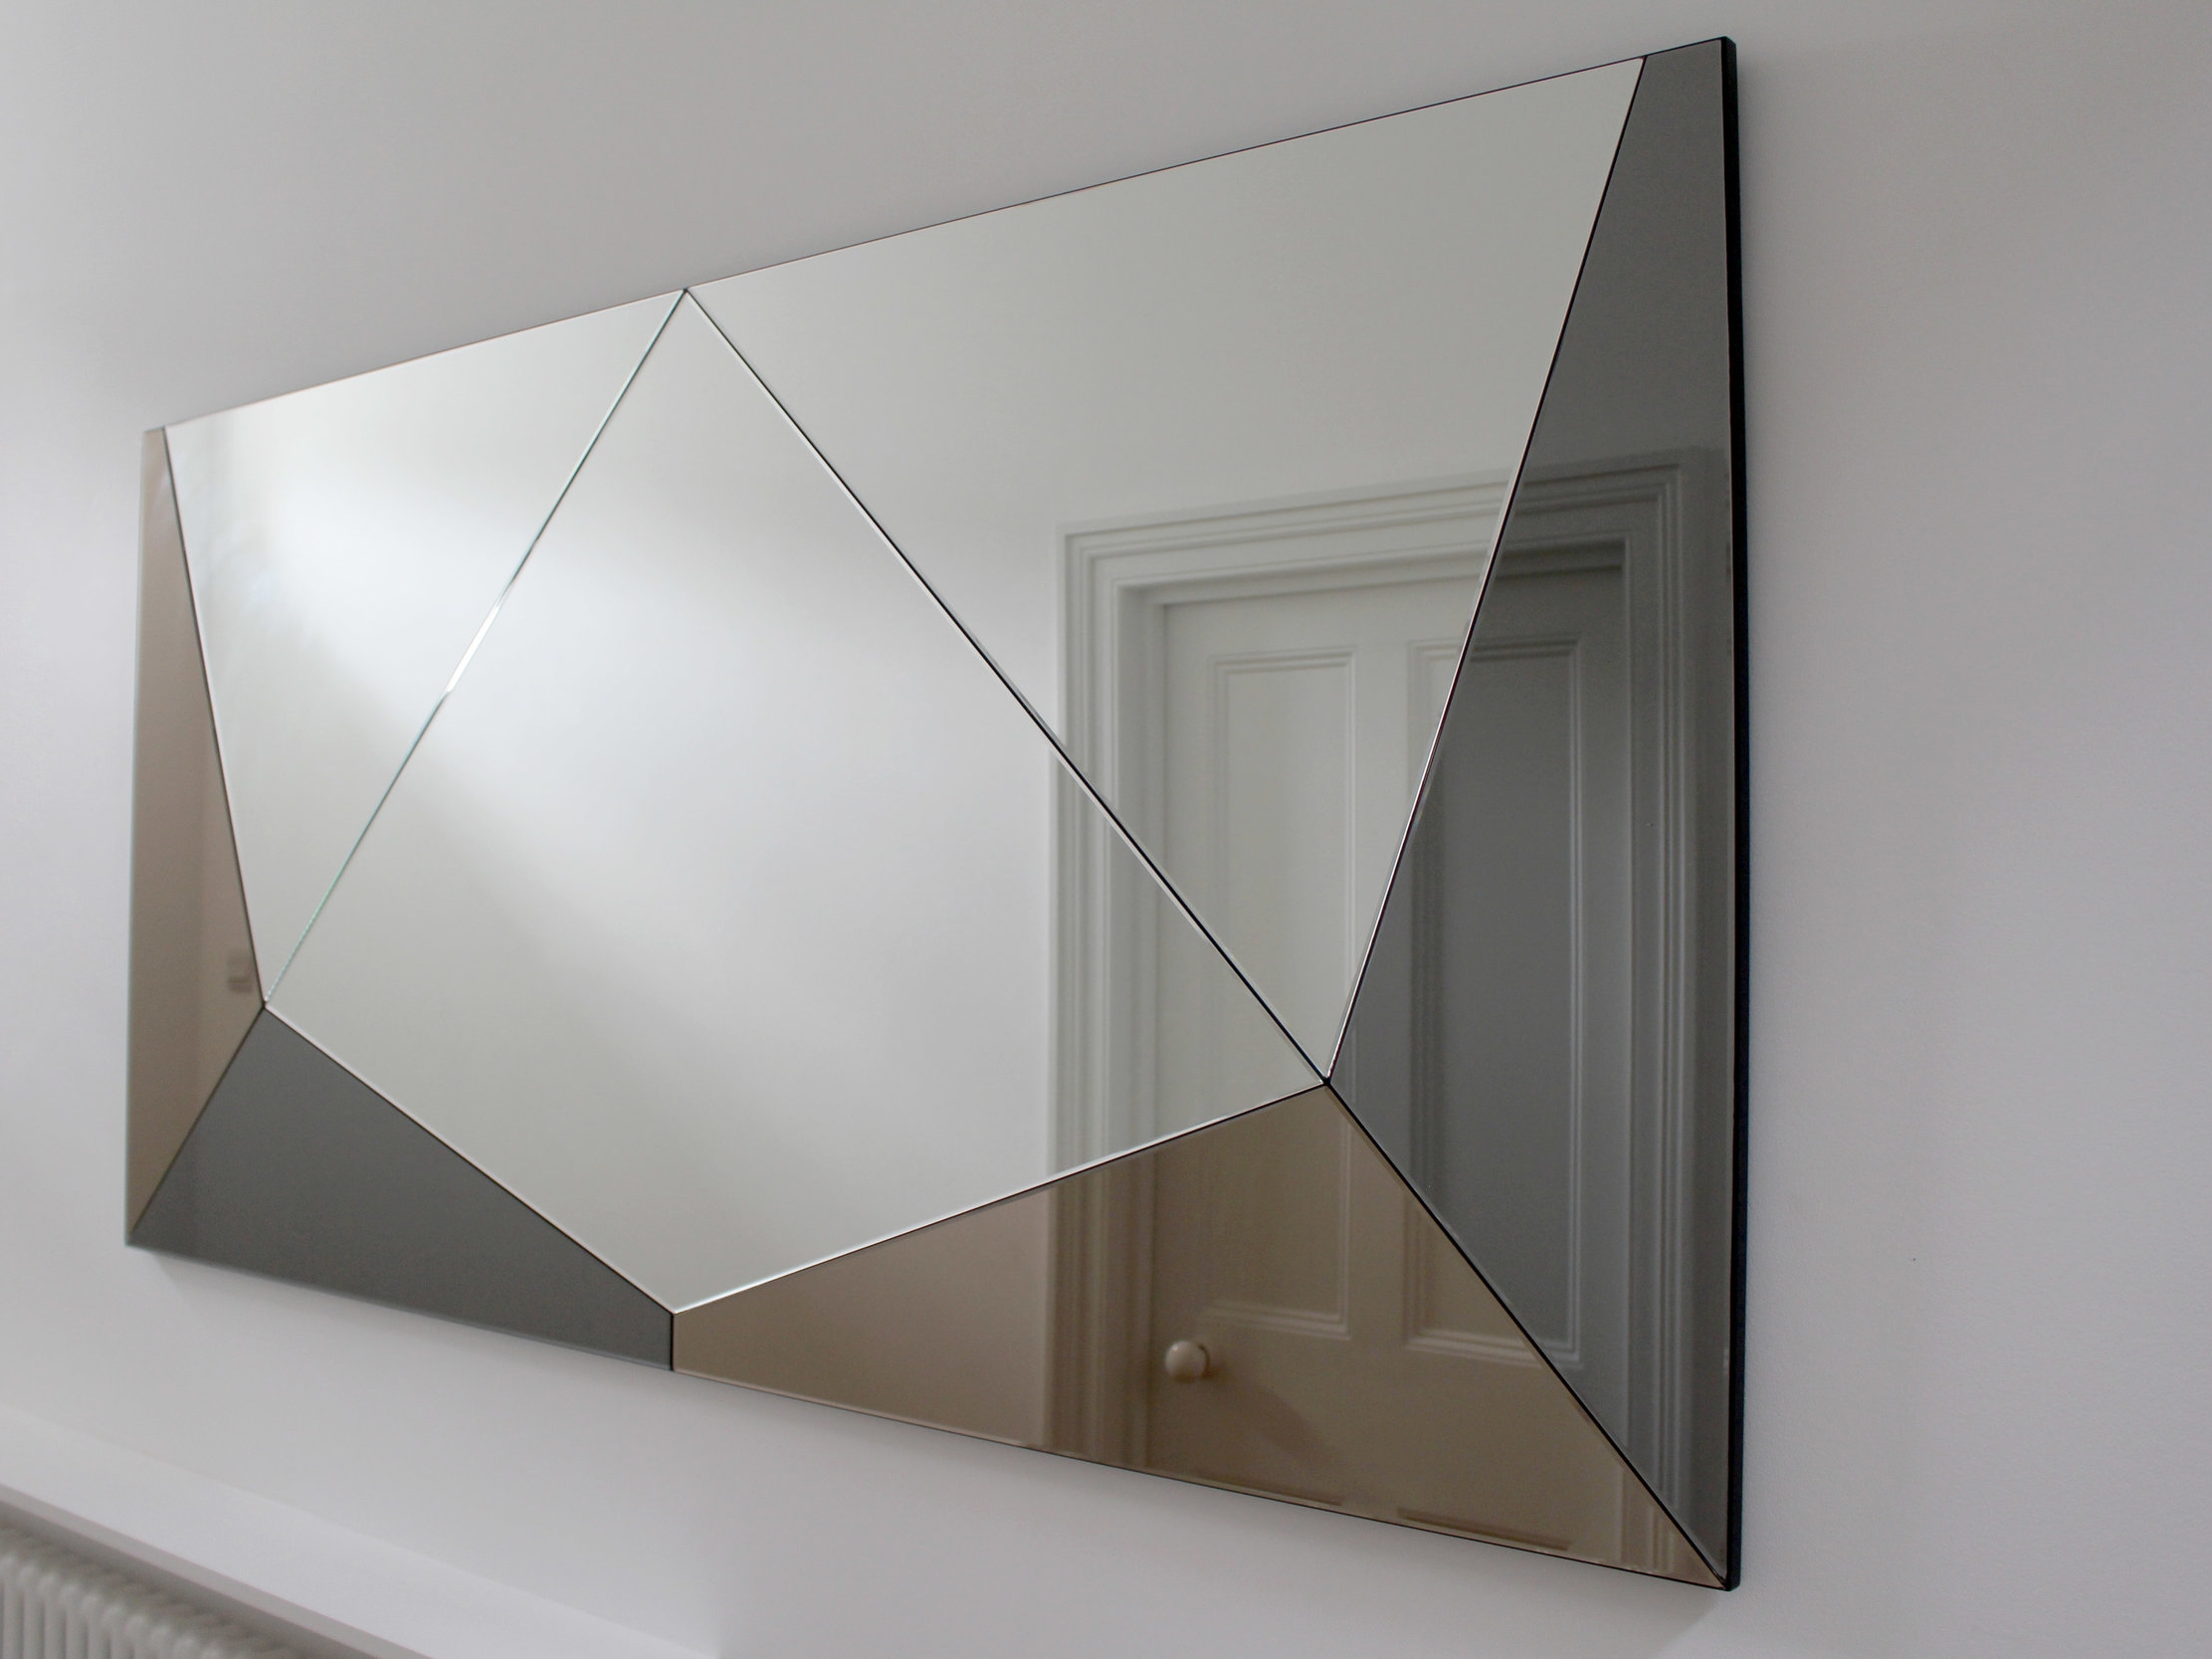 Bespoke Mirrors - offers a bespoke mirror design and manufacture service for individuals and professionals. Haidée has over ten years experience interpreting your ideas and requirements into beautifully designed and finishe mirrors and wall pieces. All mirrors are handmade in the UK with the help of carefully selected manufacturers.